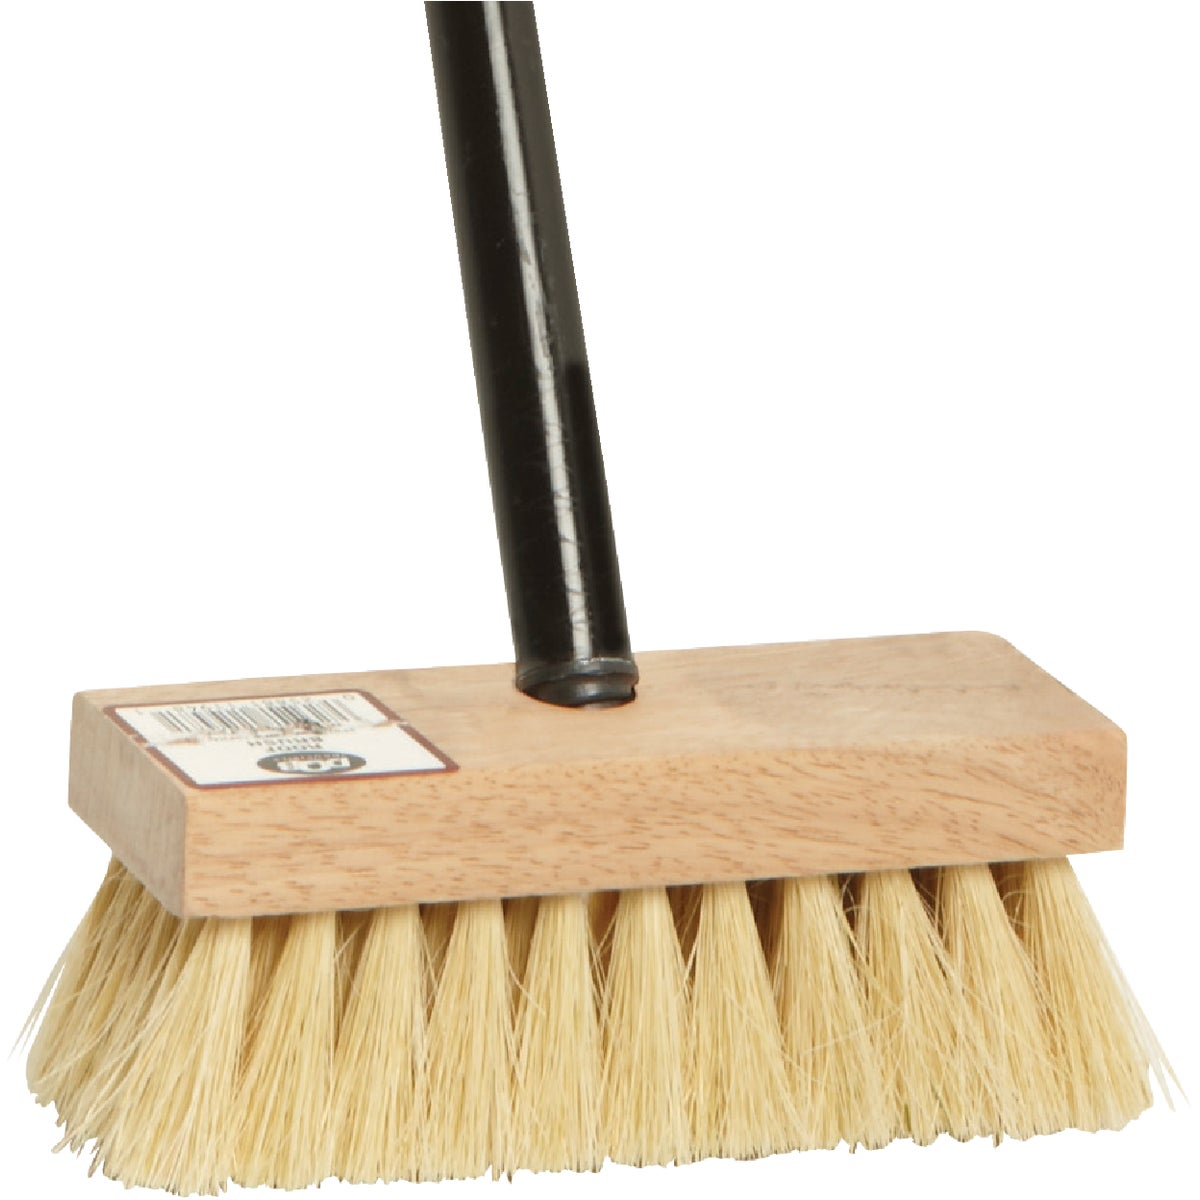 ROOF BRUSH W/HANDLE - 11948 by D Q B Ind